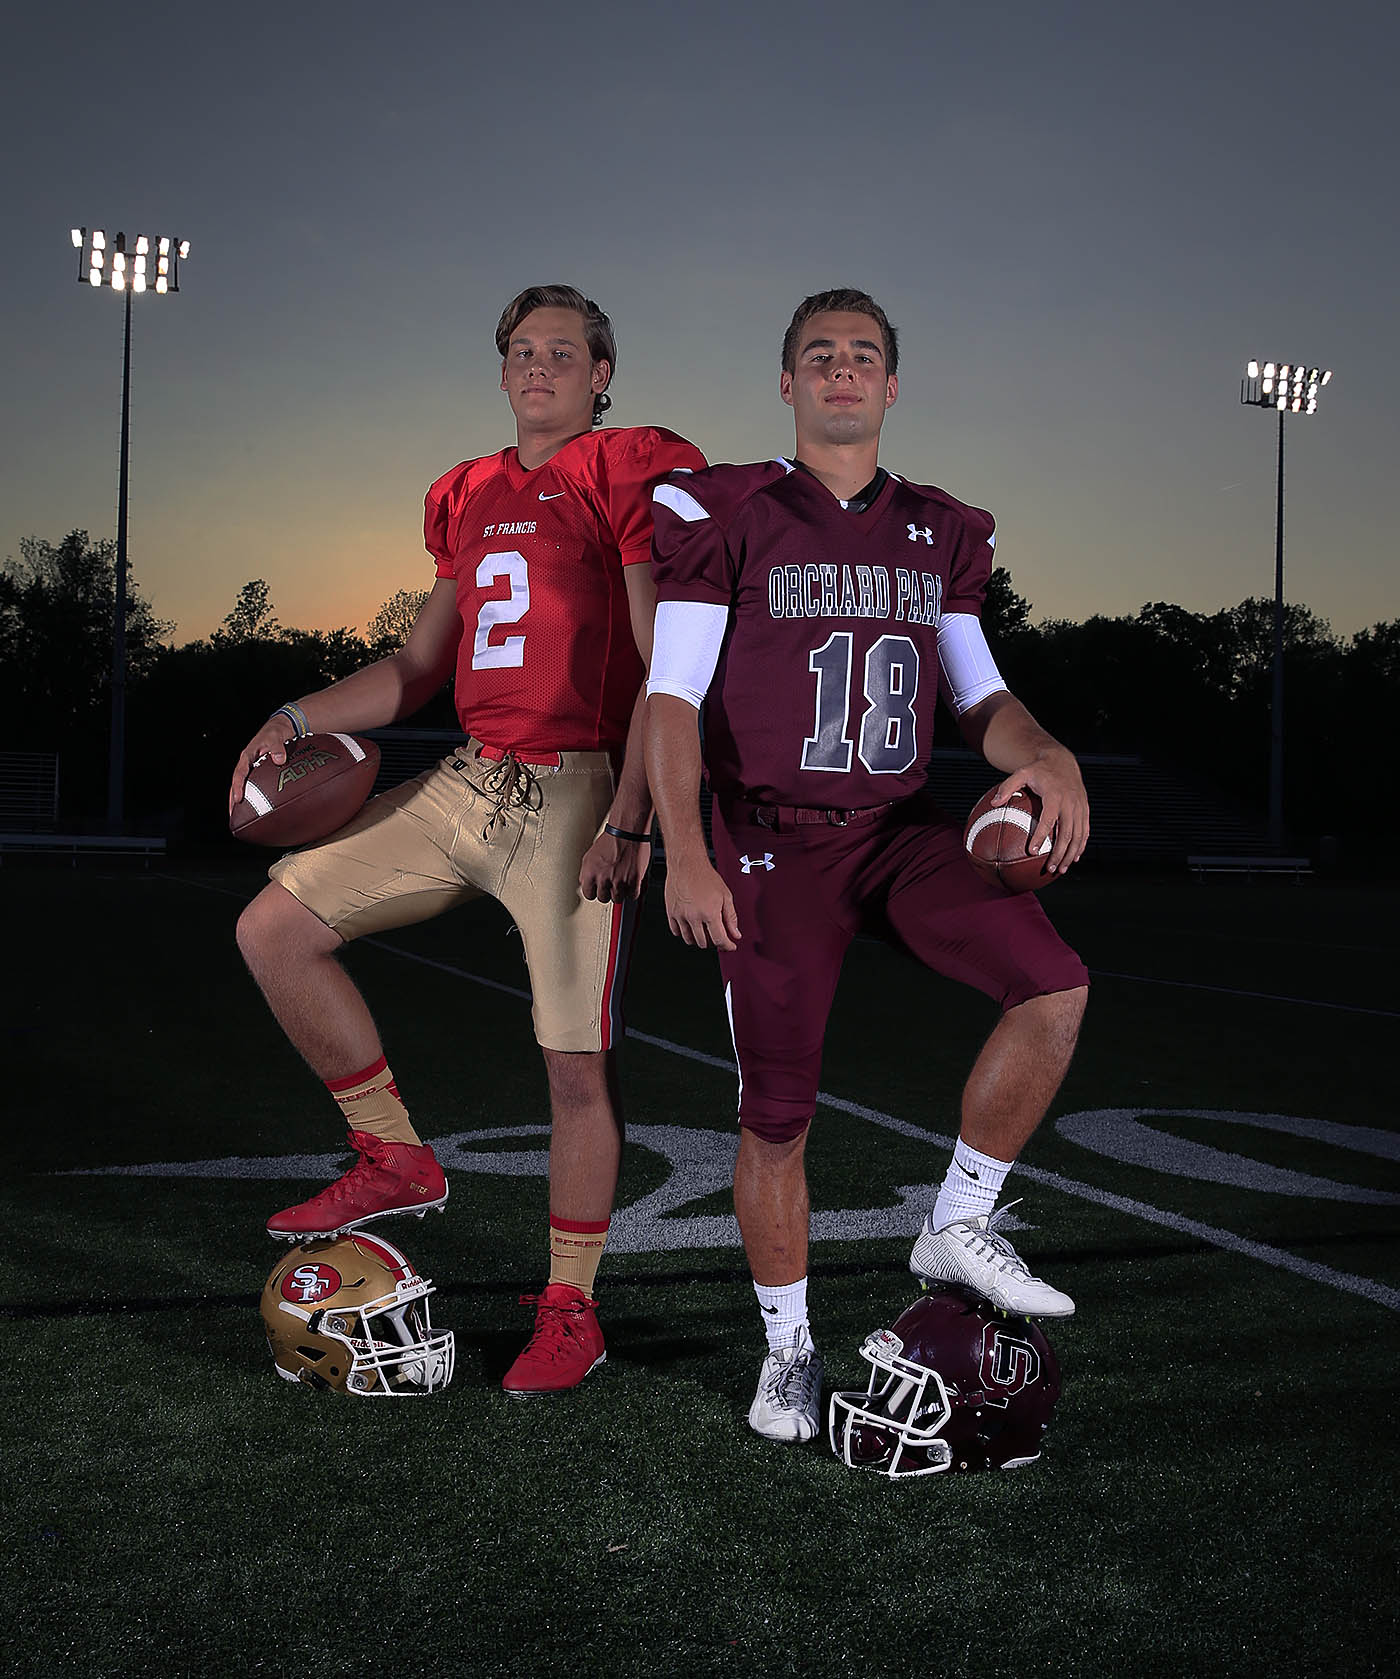 St. Francis quarterback Jerry Hickson and Orchard Park quarterback Dillon Janca at Orchard Park High School on Tuesday, Aug. 23, 2016. (Harry Scull Jr./Buffalo News)